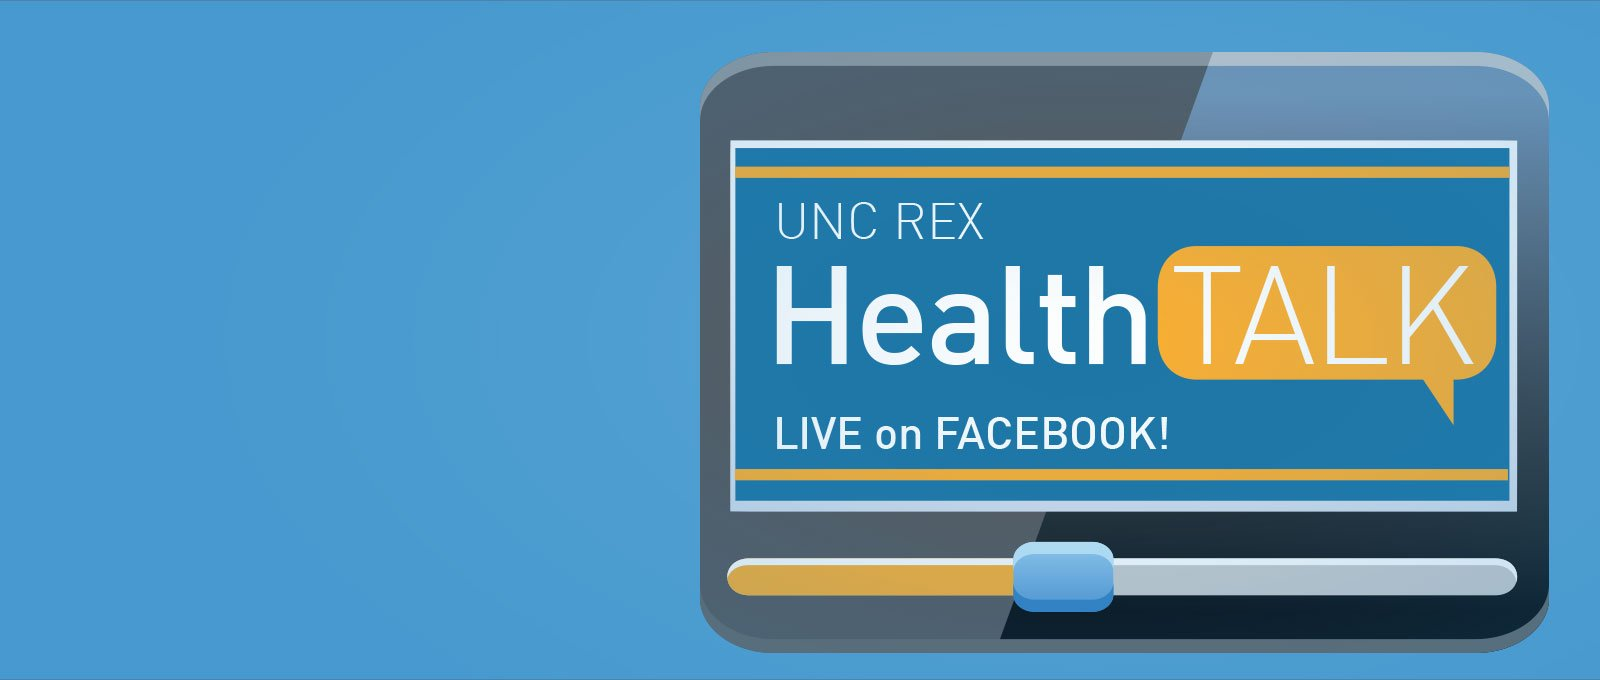 UNC REX Health Talk